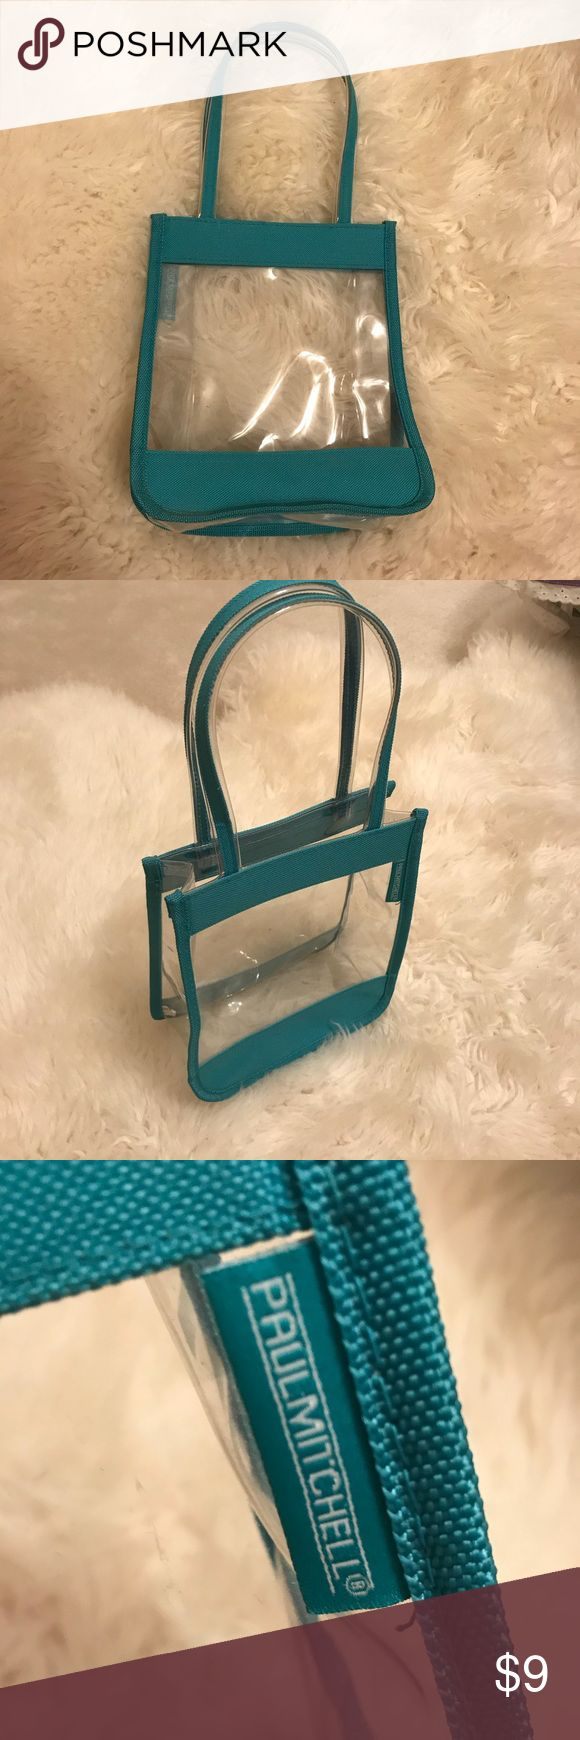 Paul Mitchell clear cosmetic bag Turquoise and clear bag- great for makeup and cosmetics! Paul Mitchell Bags